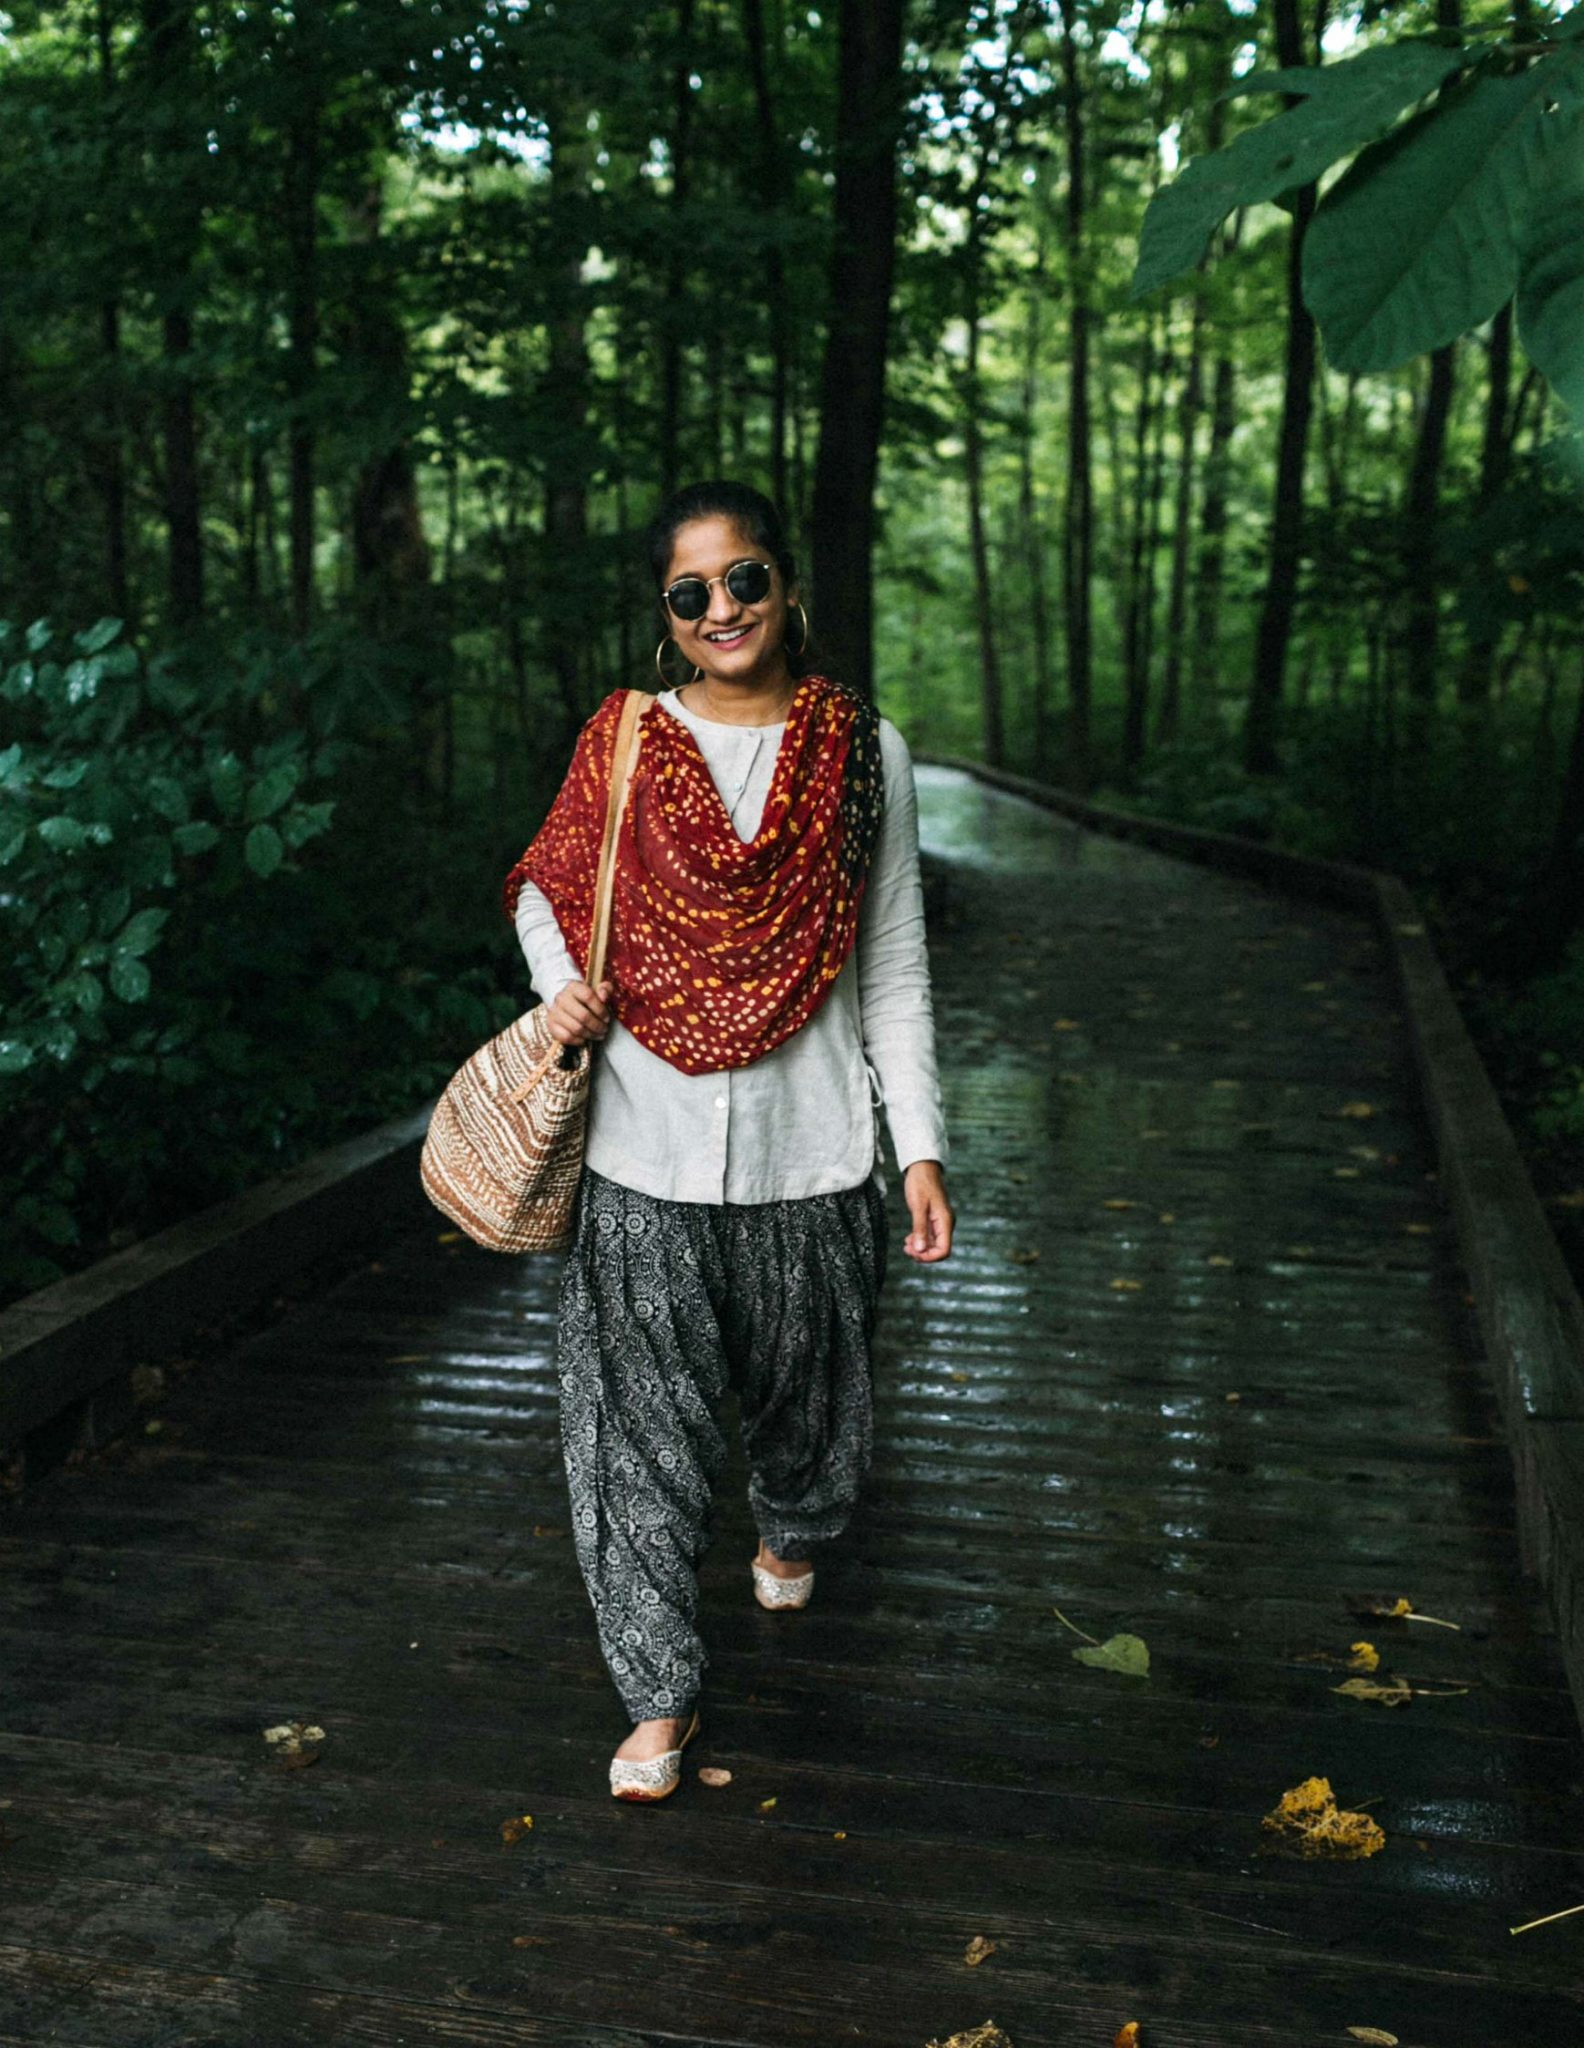 Wearing Bandini Dupatta with Patiala pant-Ethnic summer outfit | 15 Desi / Indian Customs of Mine: wearing patiala pants, featured by popular US fashion blogger, Dreaming Loud